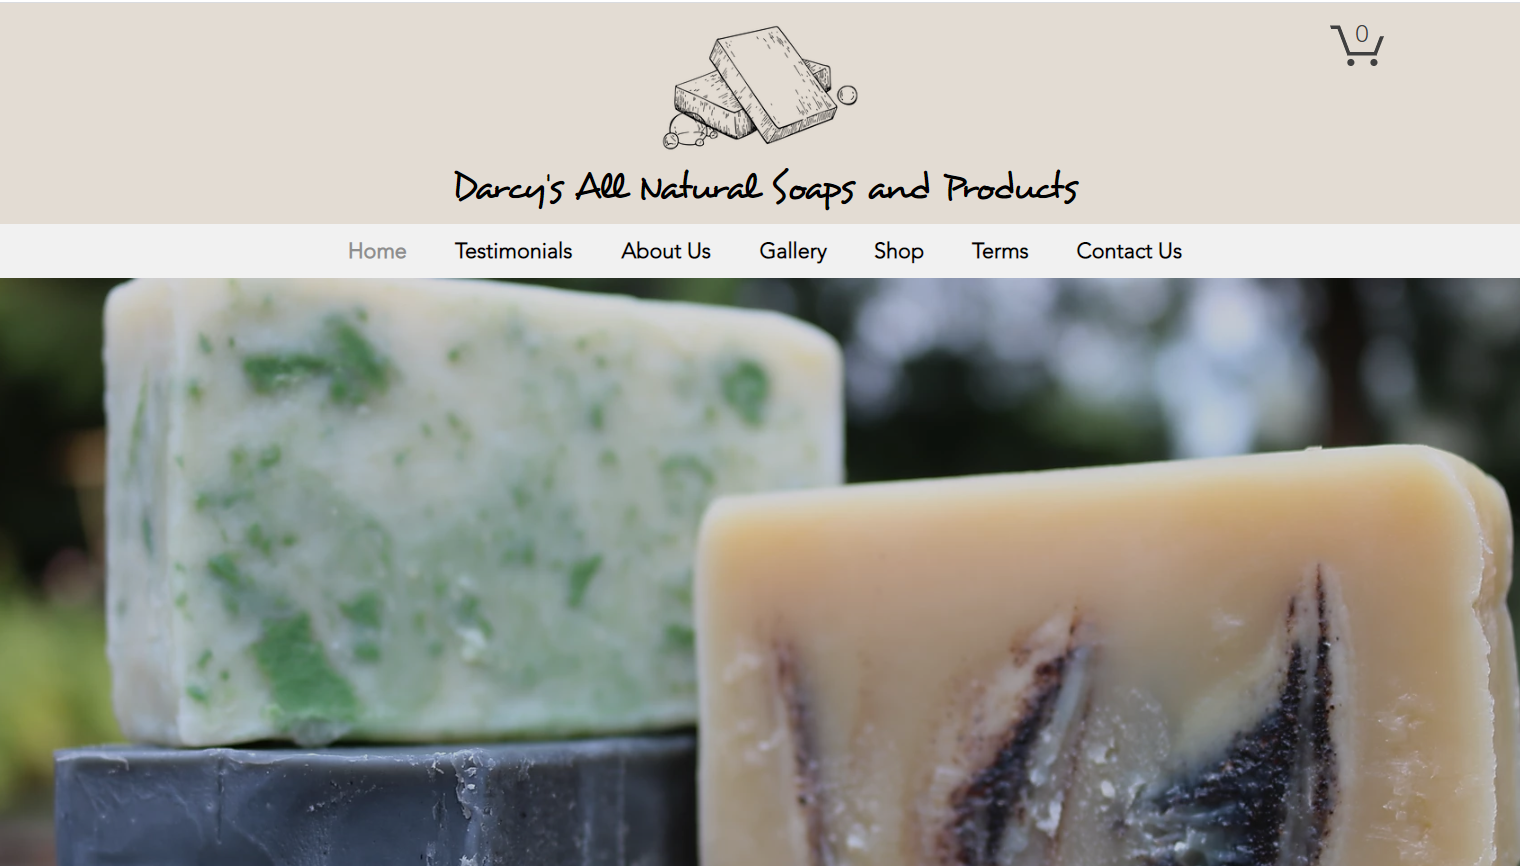 Darcy's All Natural Soaps & Products